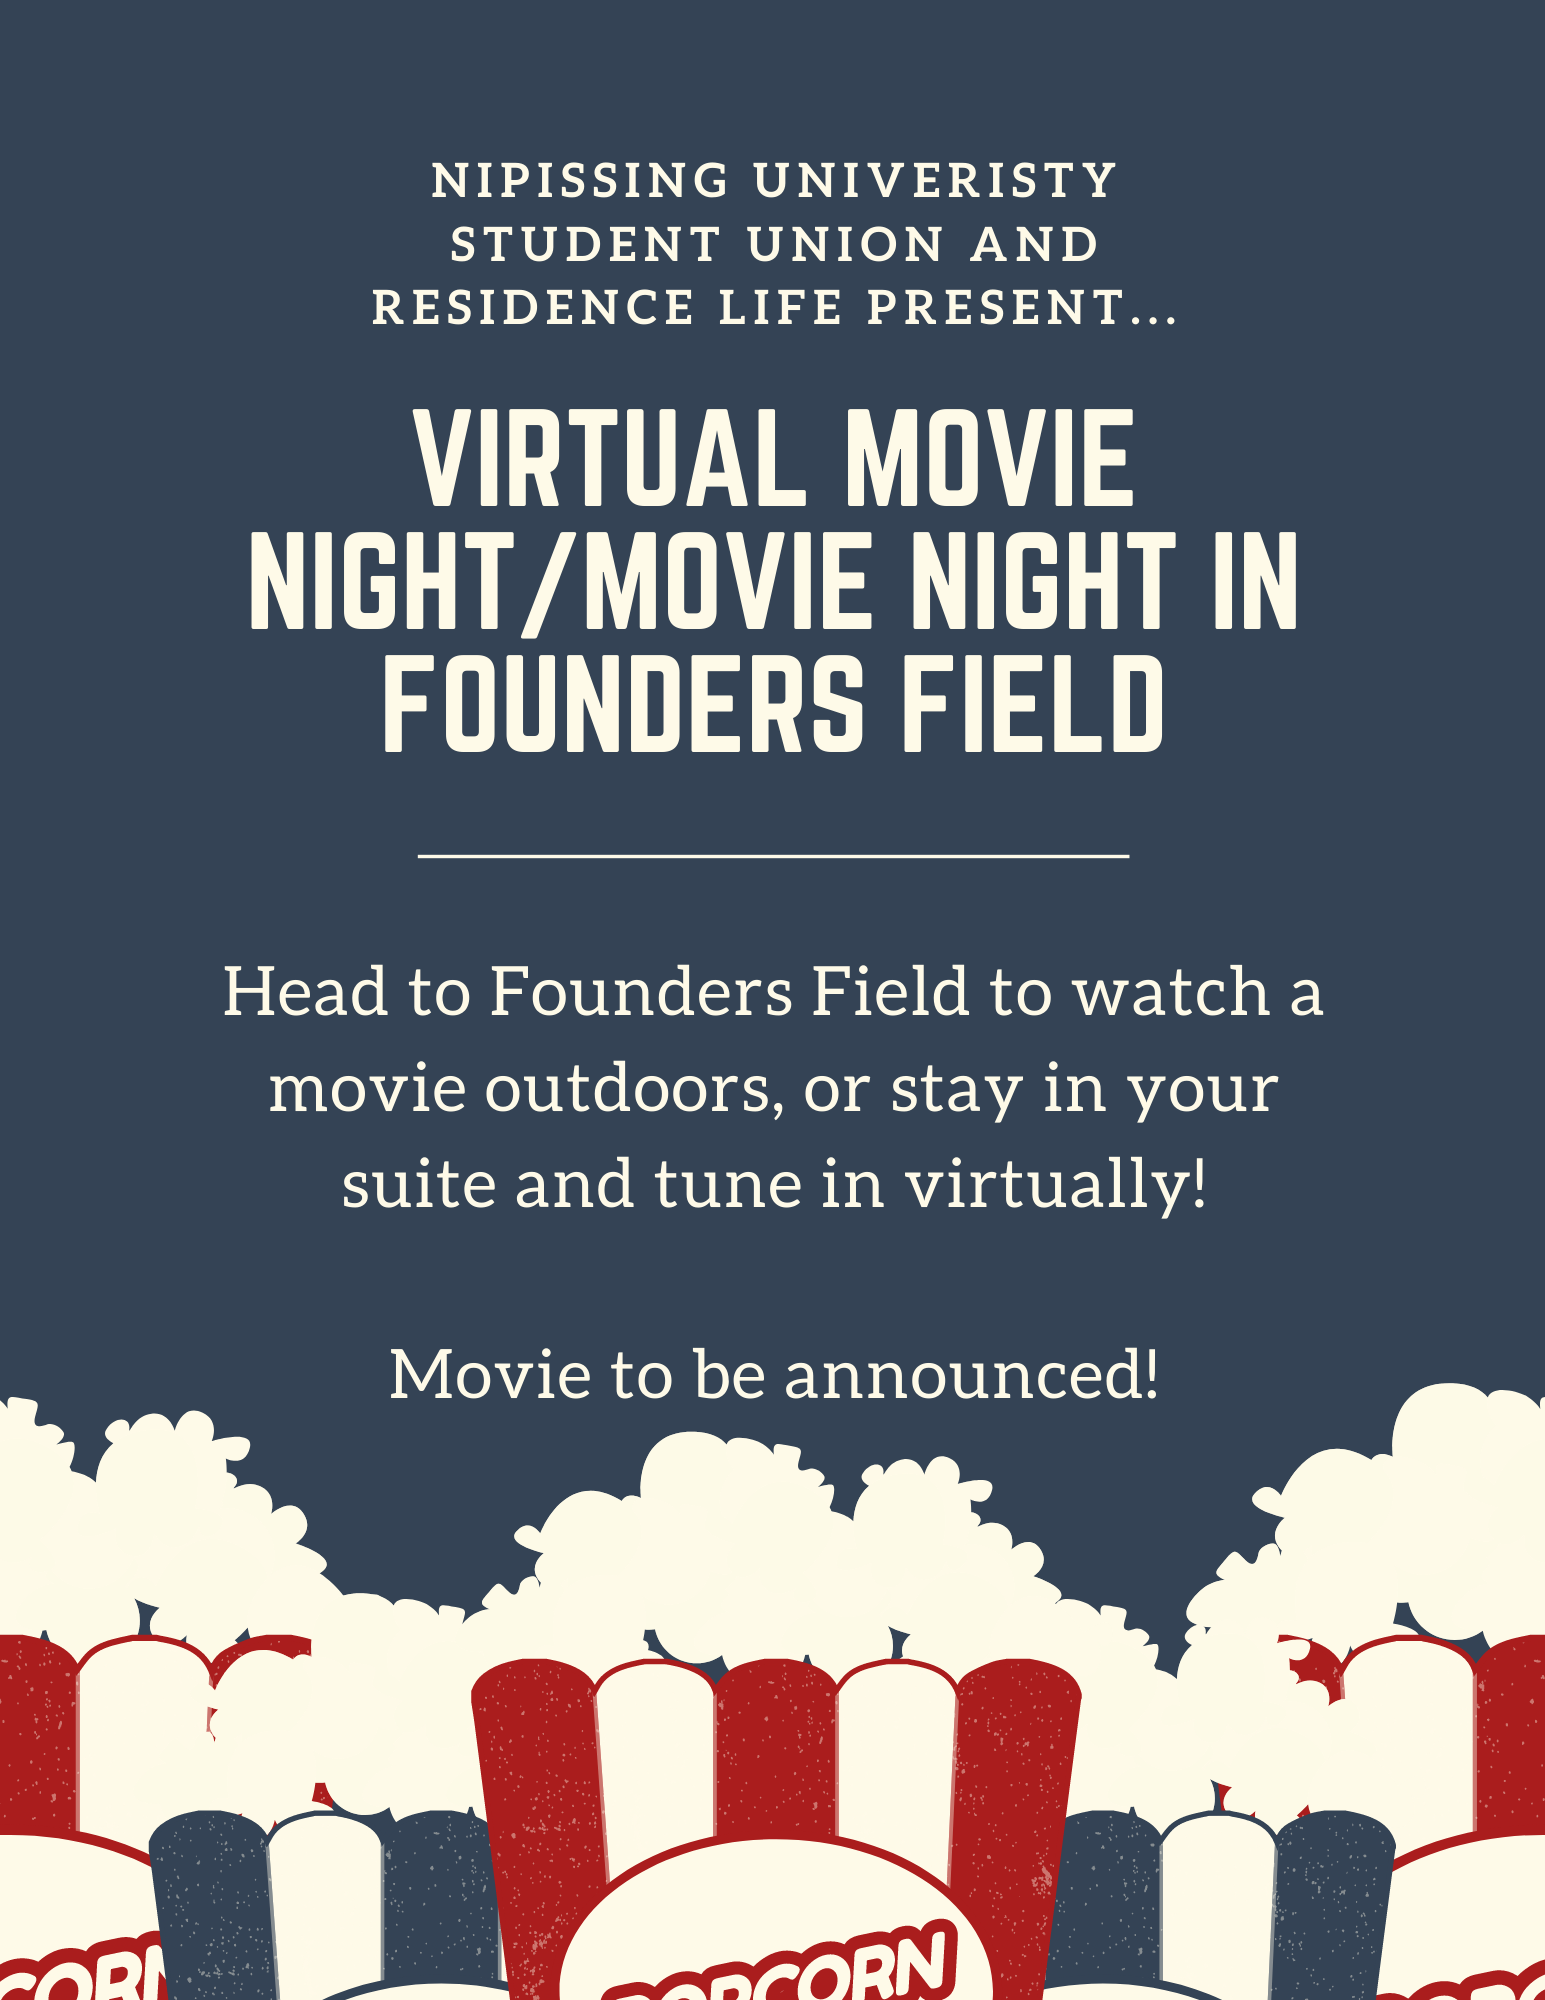 "Flyer for Virtual Movie Night with popcorn at the bottom of the flyer and text that reads ""NUSU and Residence LIfe Present.. Virtual Movie Night/Movie Night in Founders Field. Head to Founders Field to watch a movie outdoors, or stay in your suite and tune in virtually. Movie to be announced!"